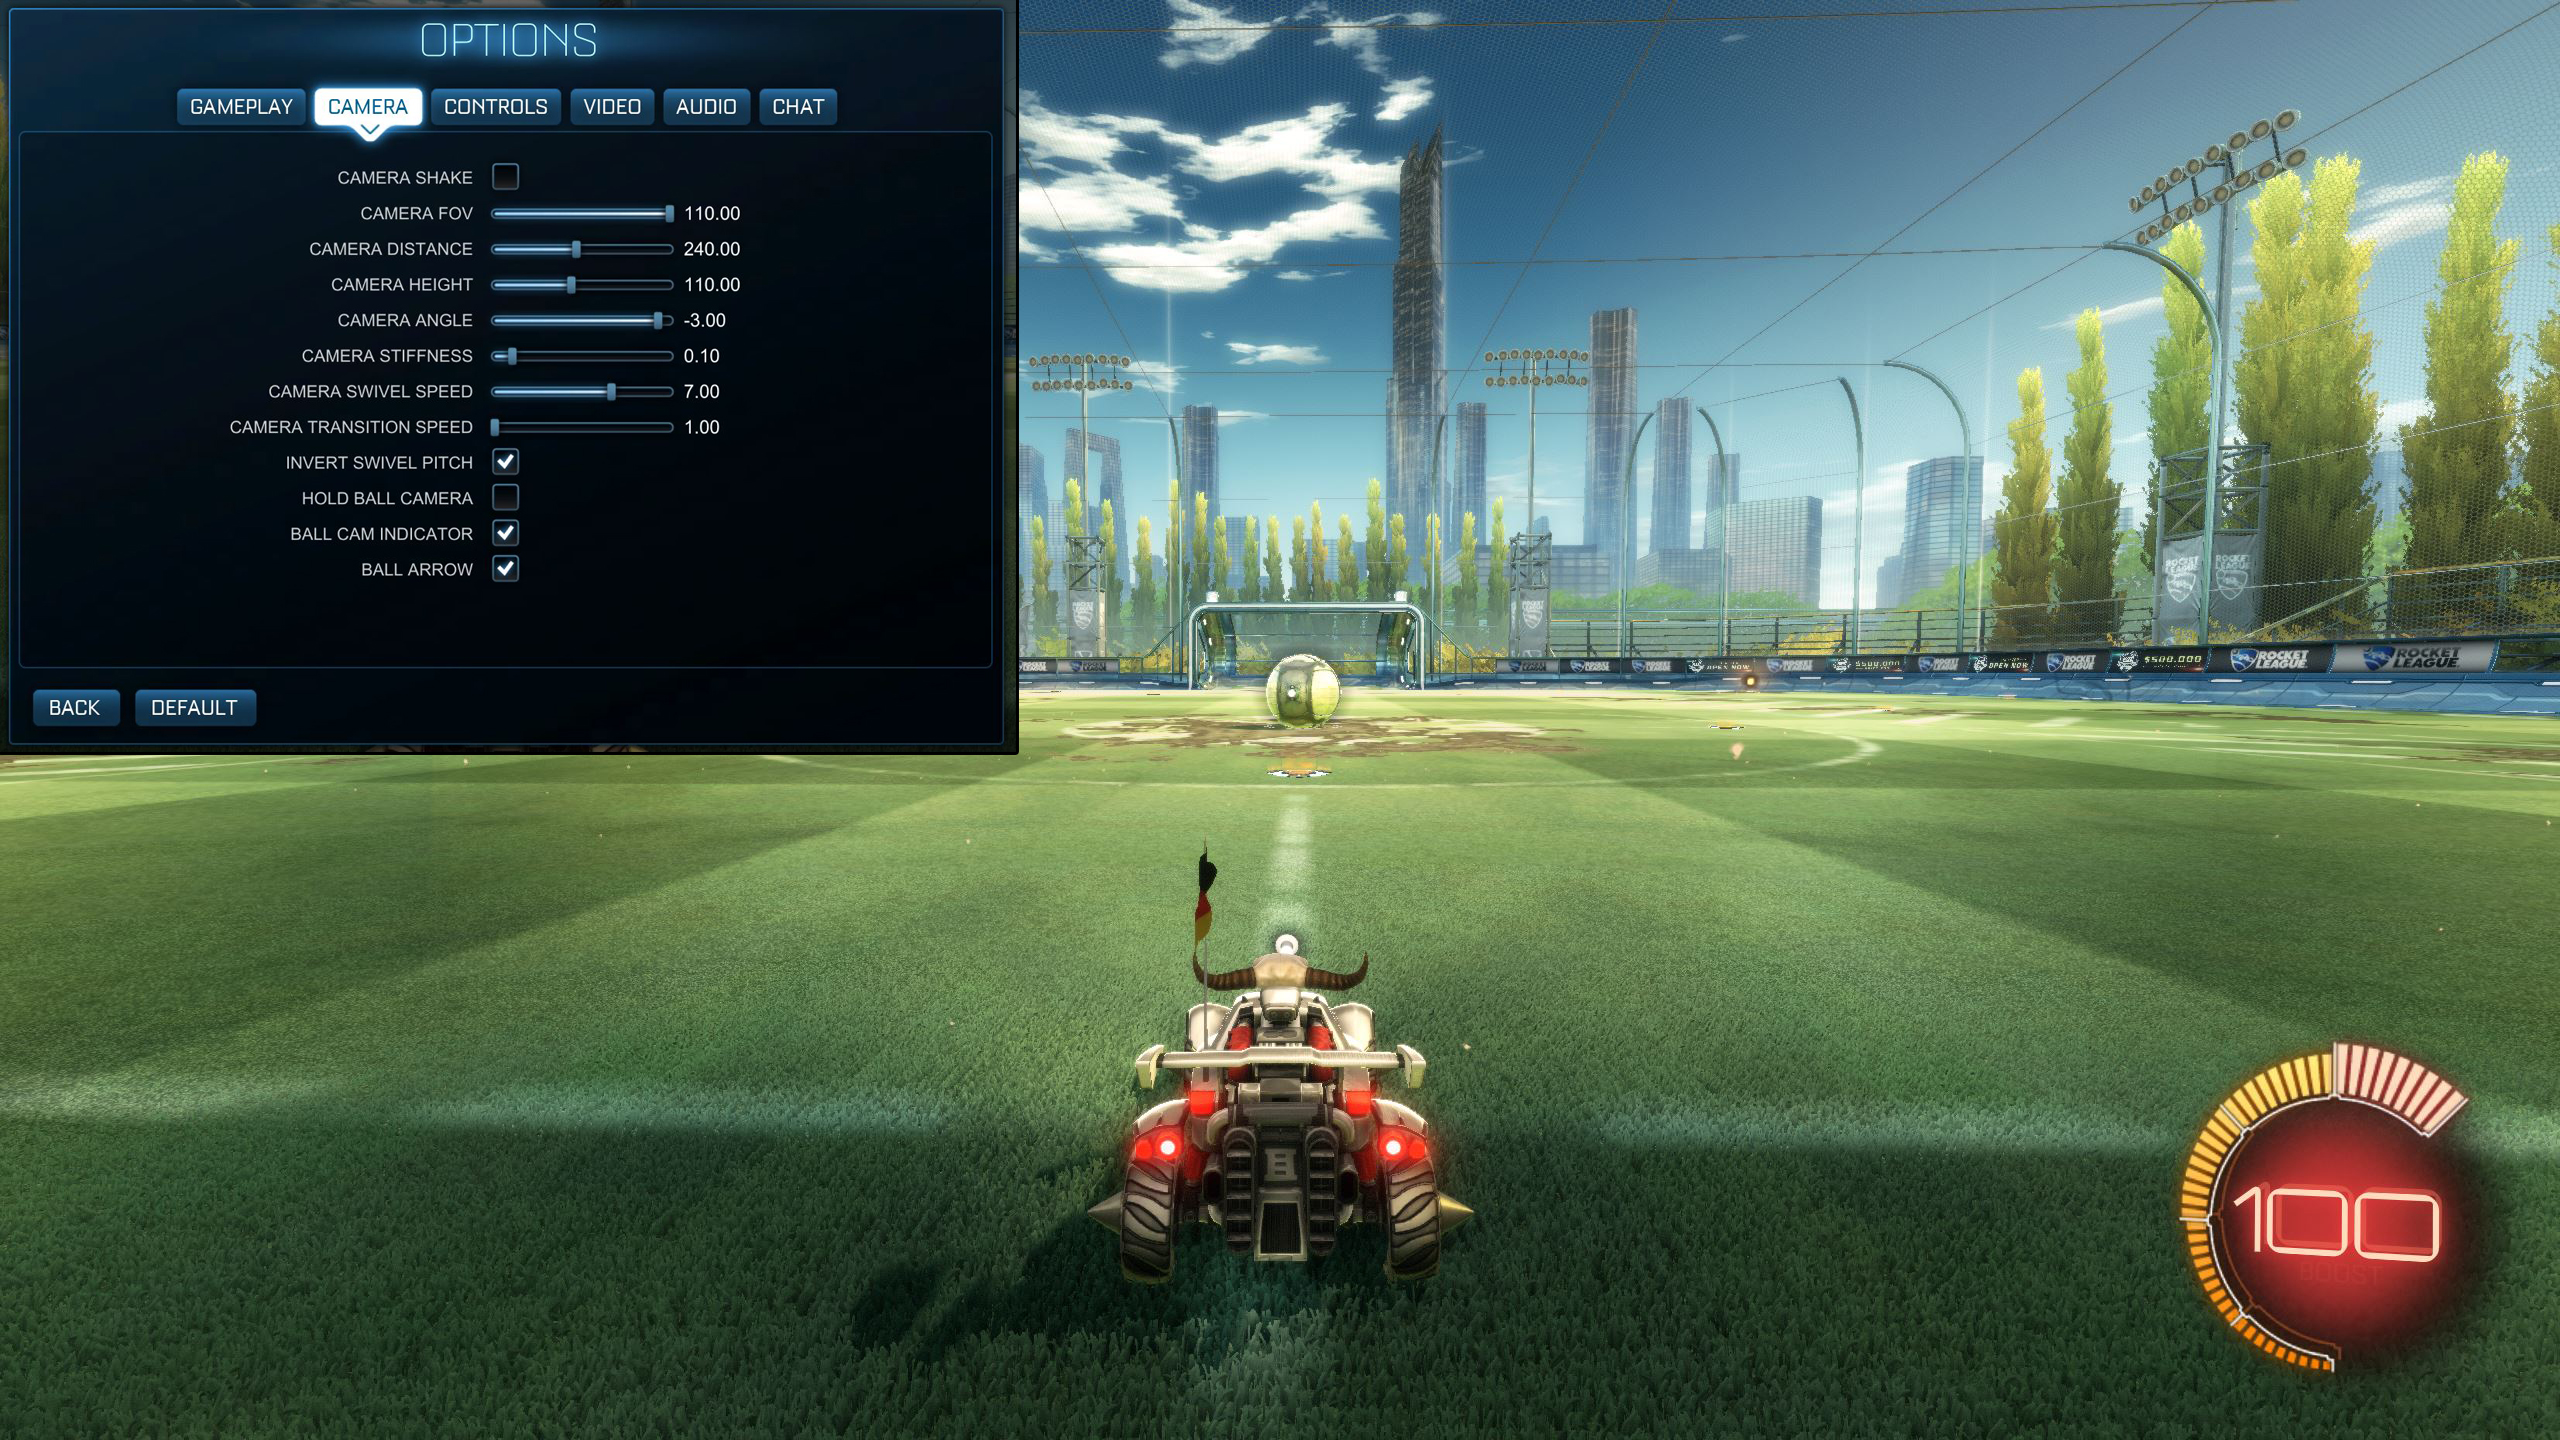 Rocket League Camera Settings Bluey